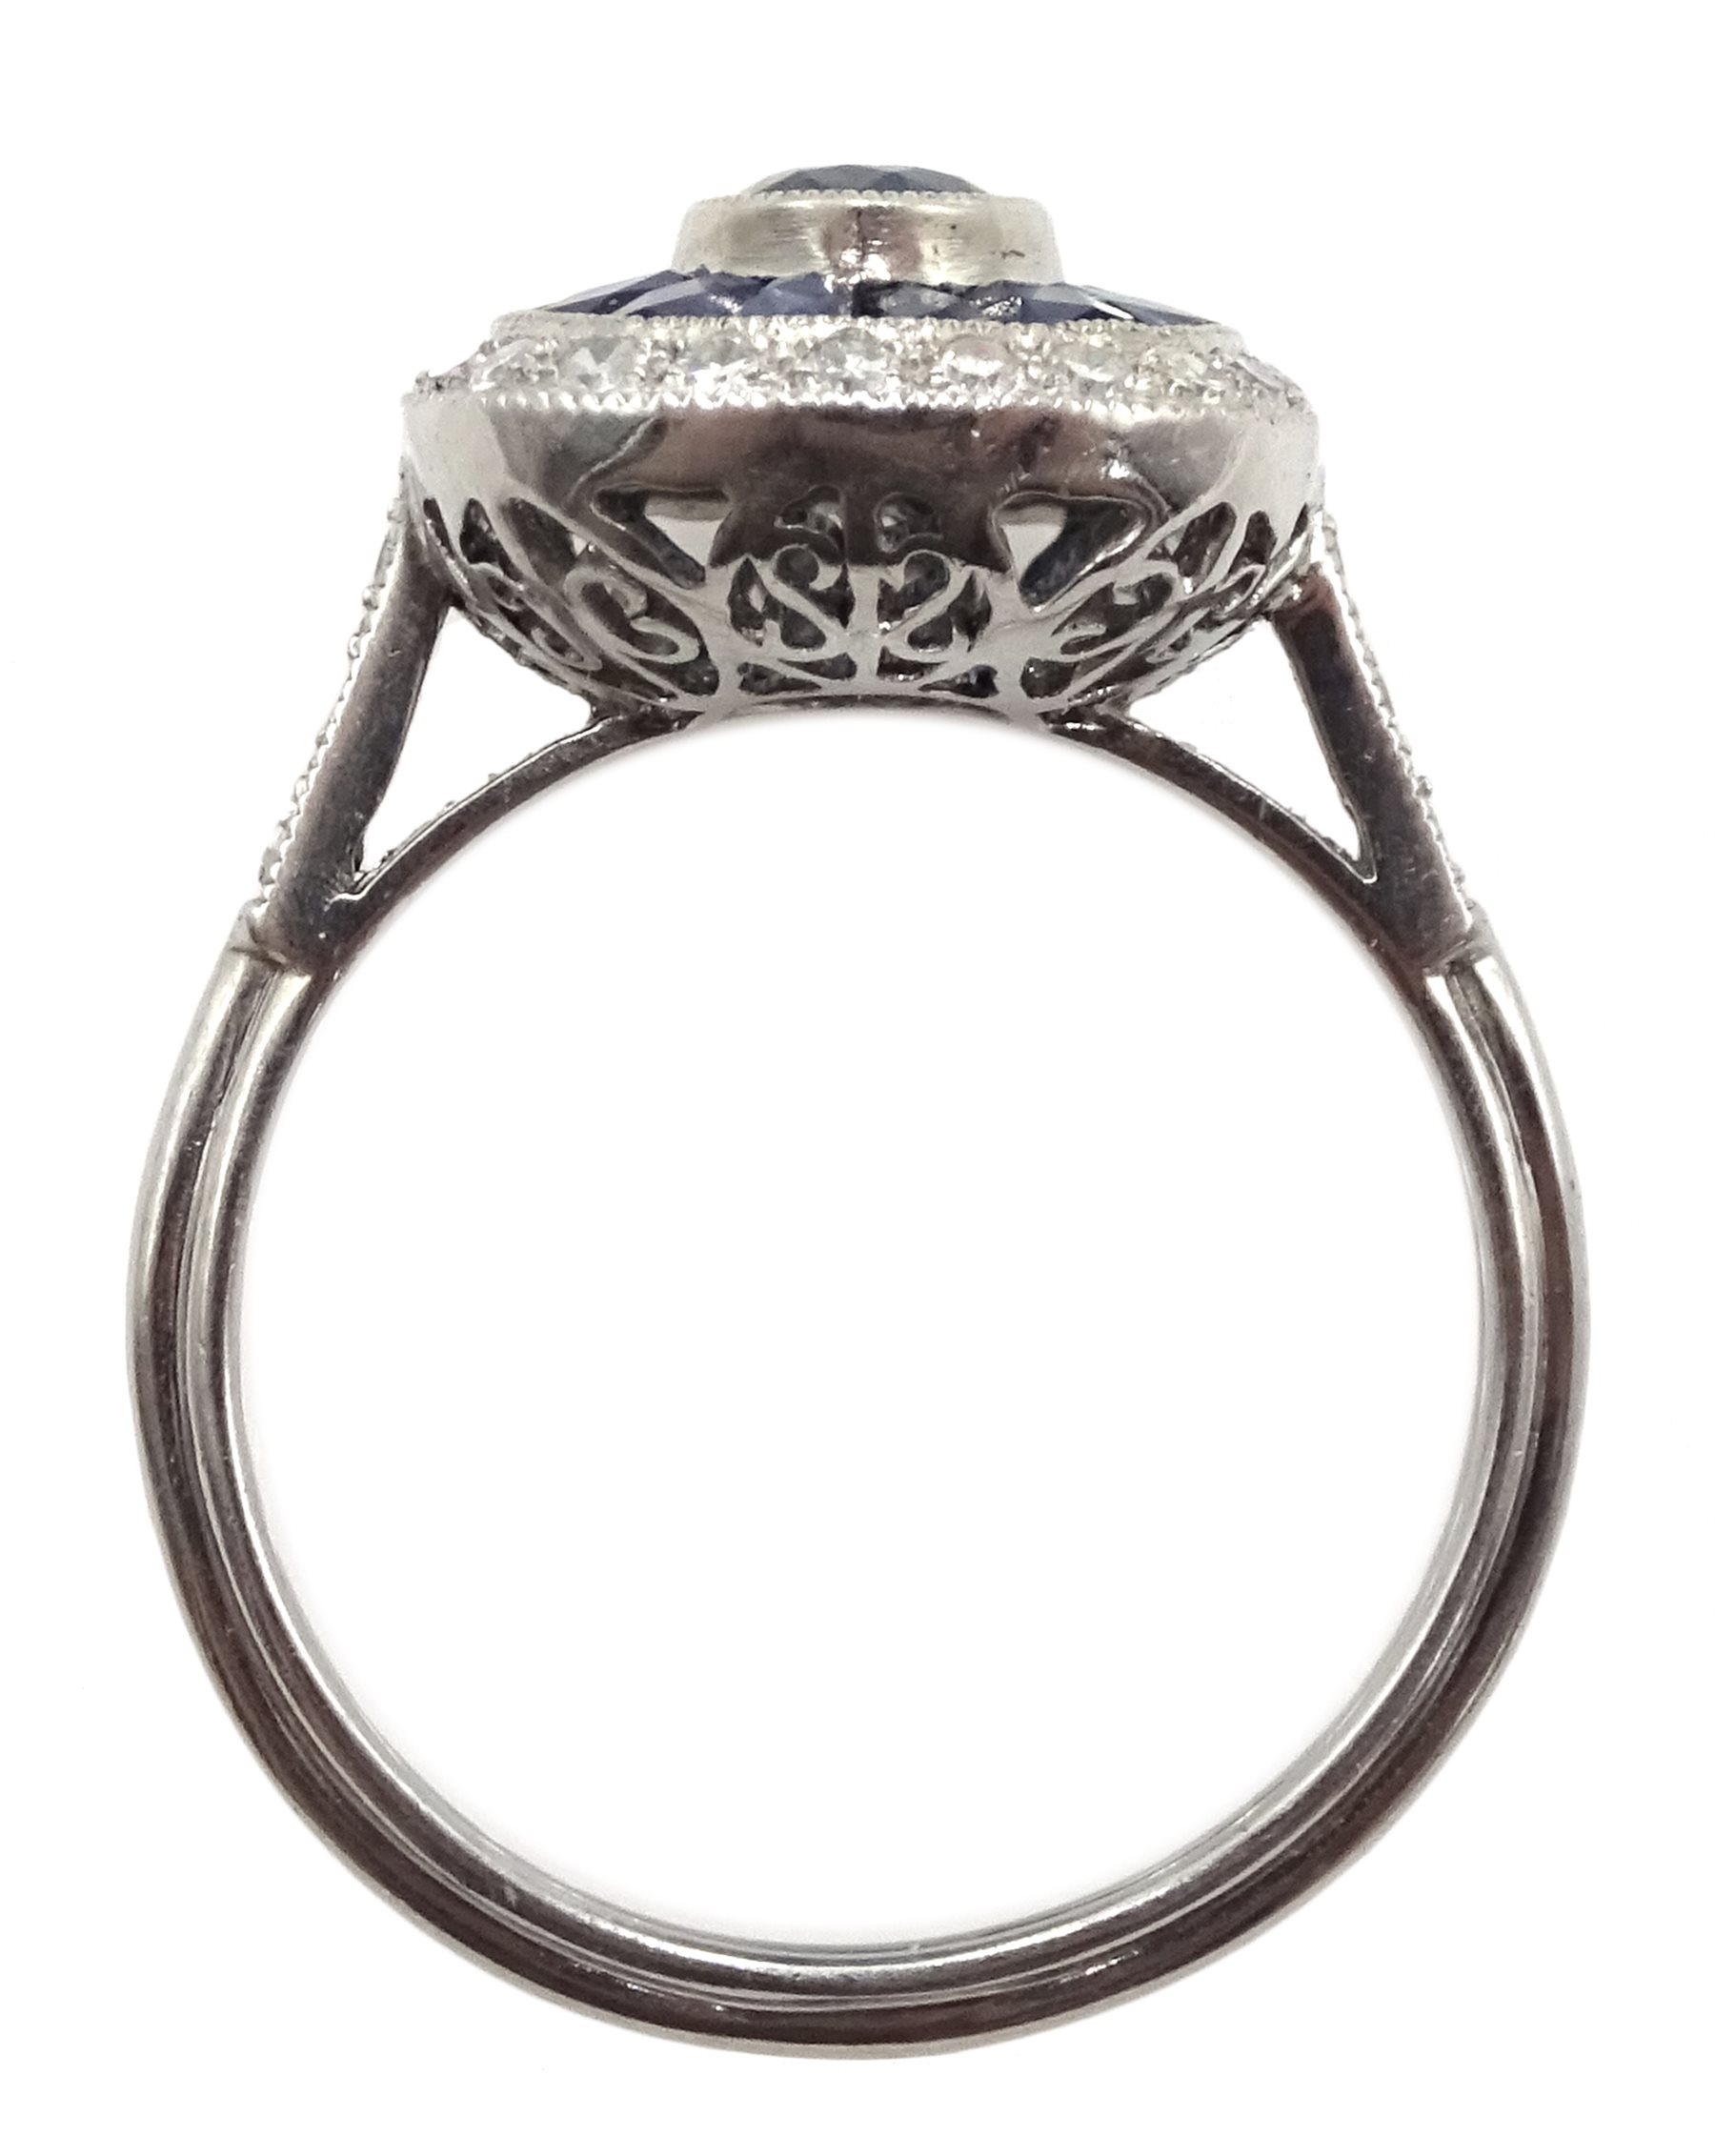 Platinum sapphire and diamond ring, the central oval sapphire surrounded by halo of calibre cut - Image 4 of 5